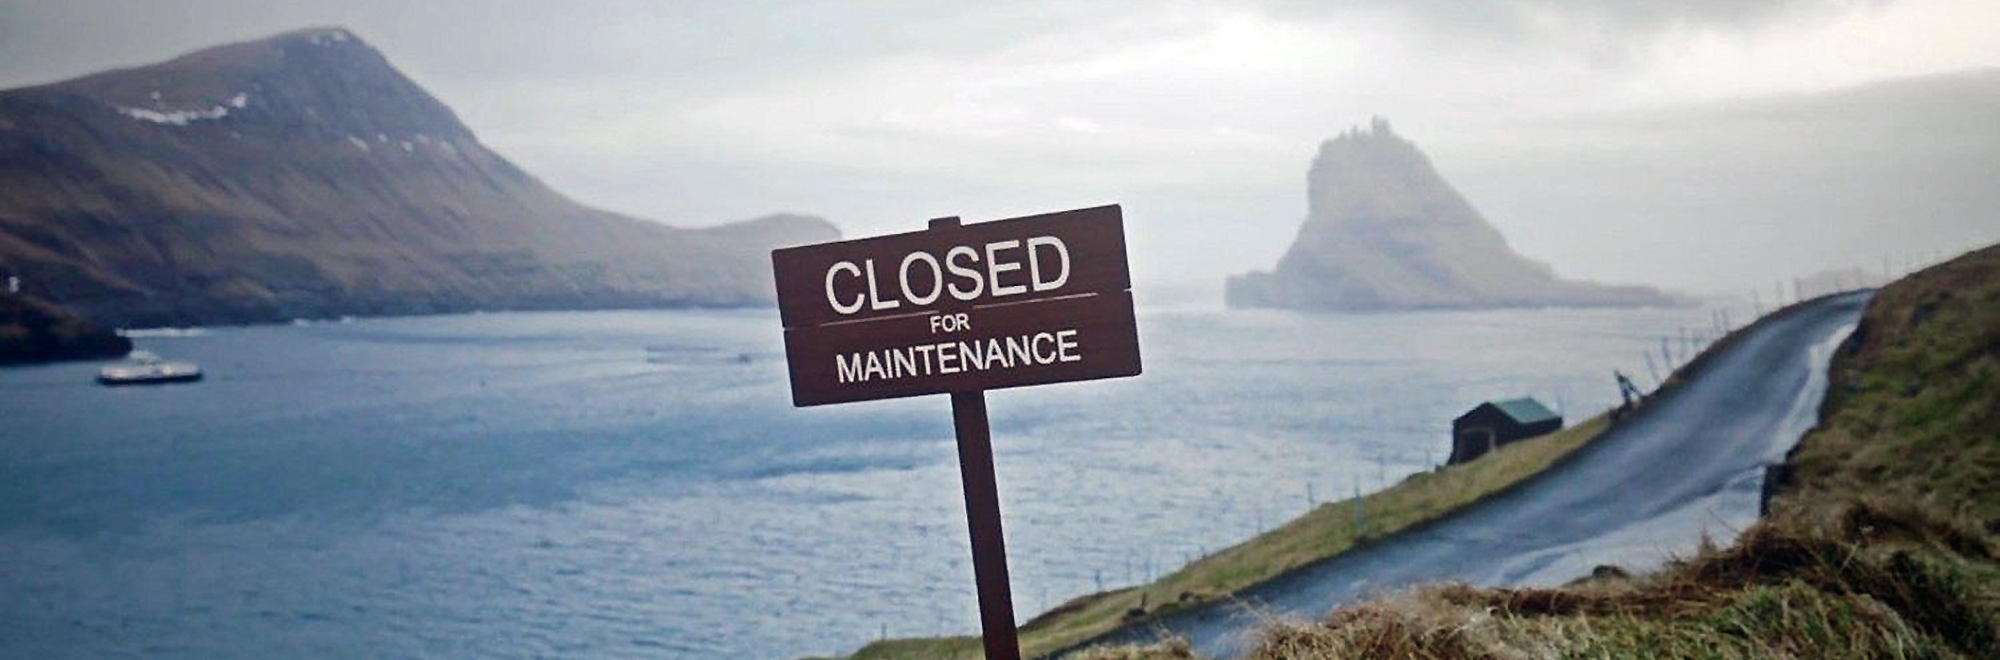 Faroe Islands are closed for maintenance, but open to some great publicity